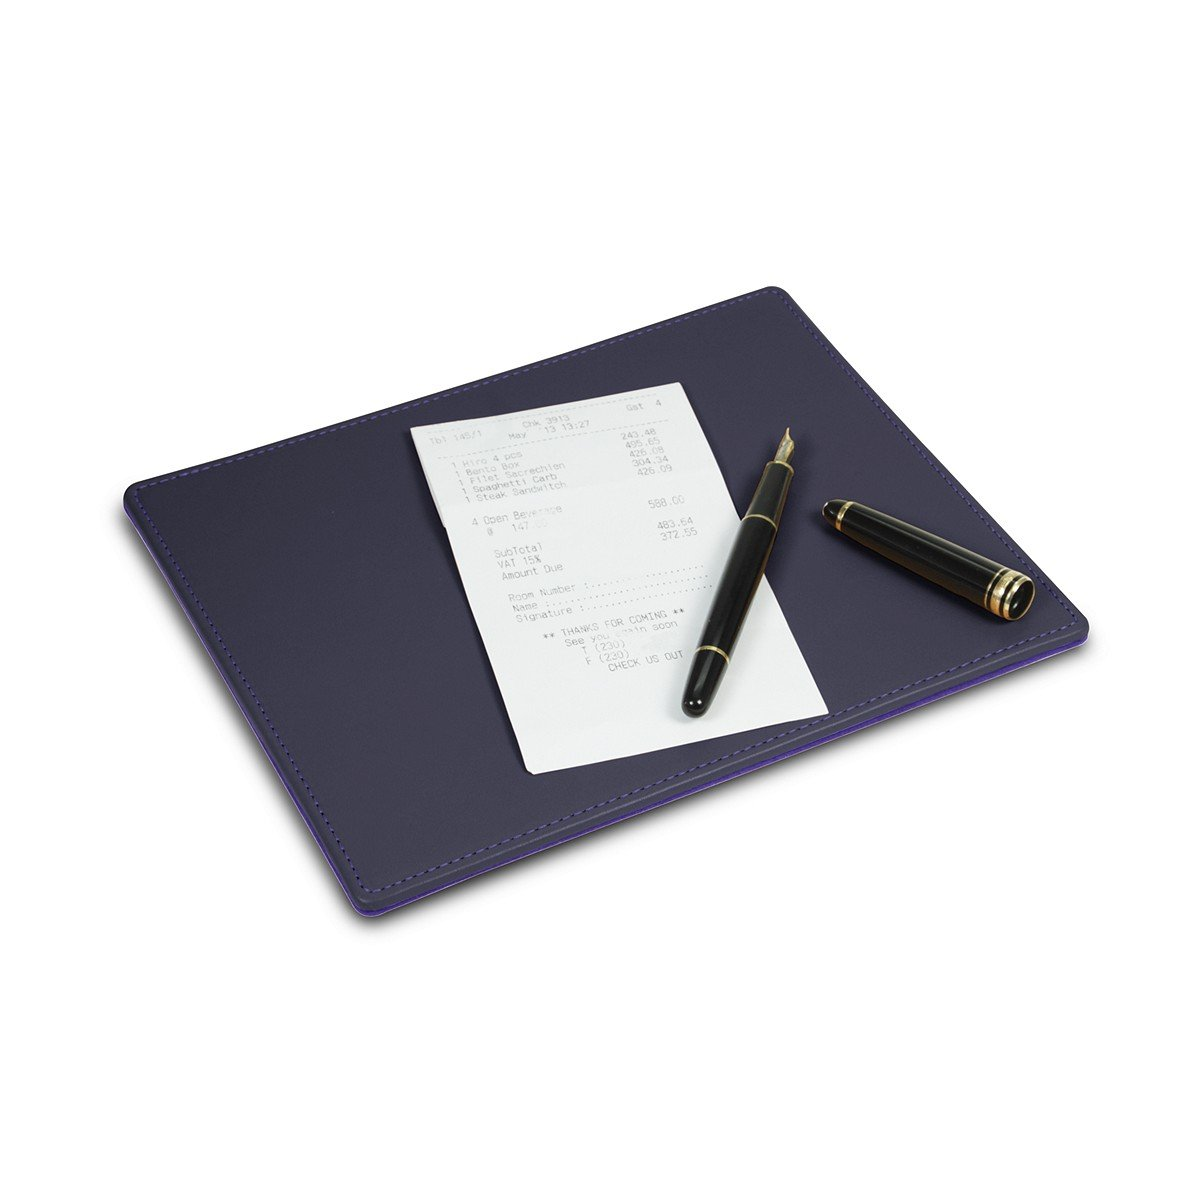 LUCRIN - Signing pad - Smooth Cow Leather, Purple